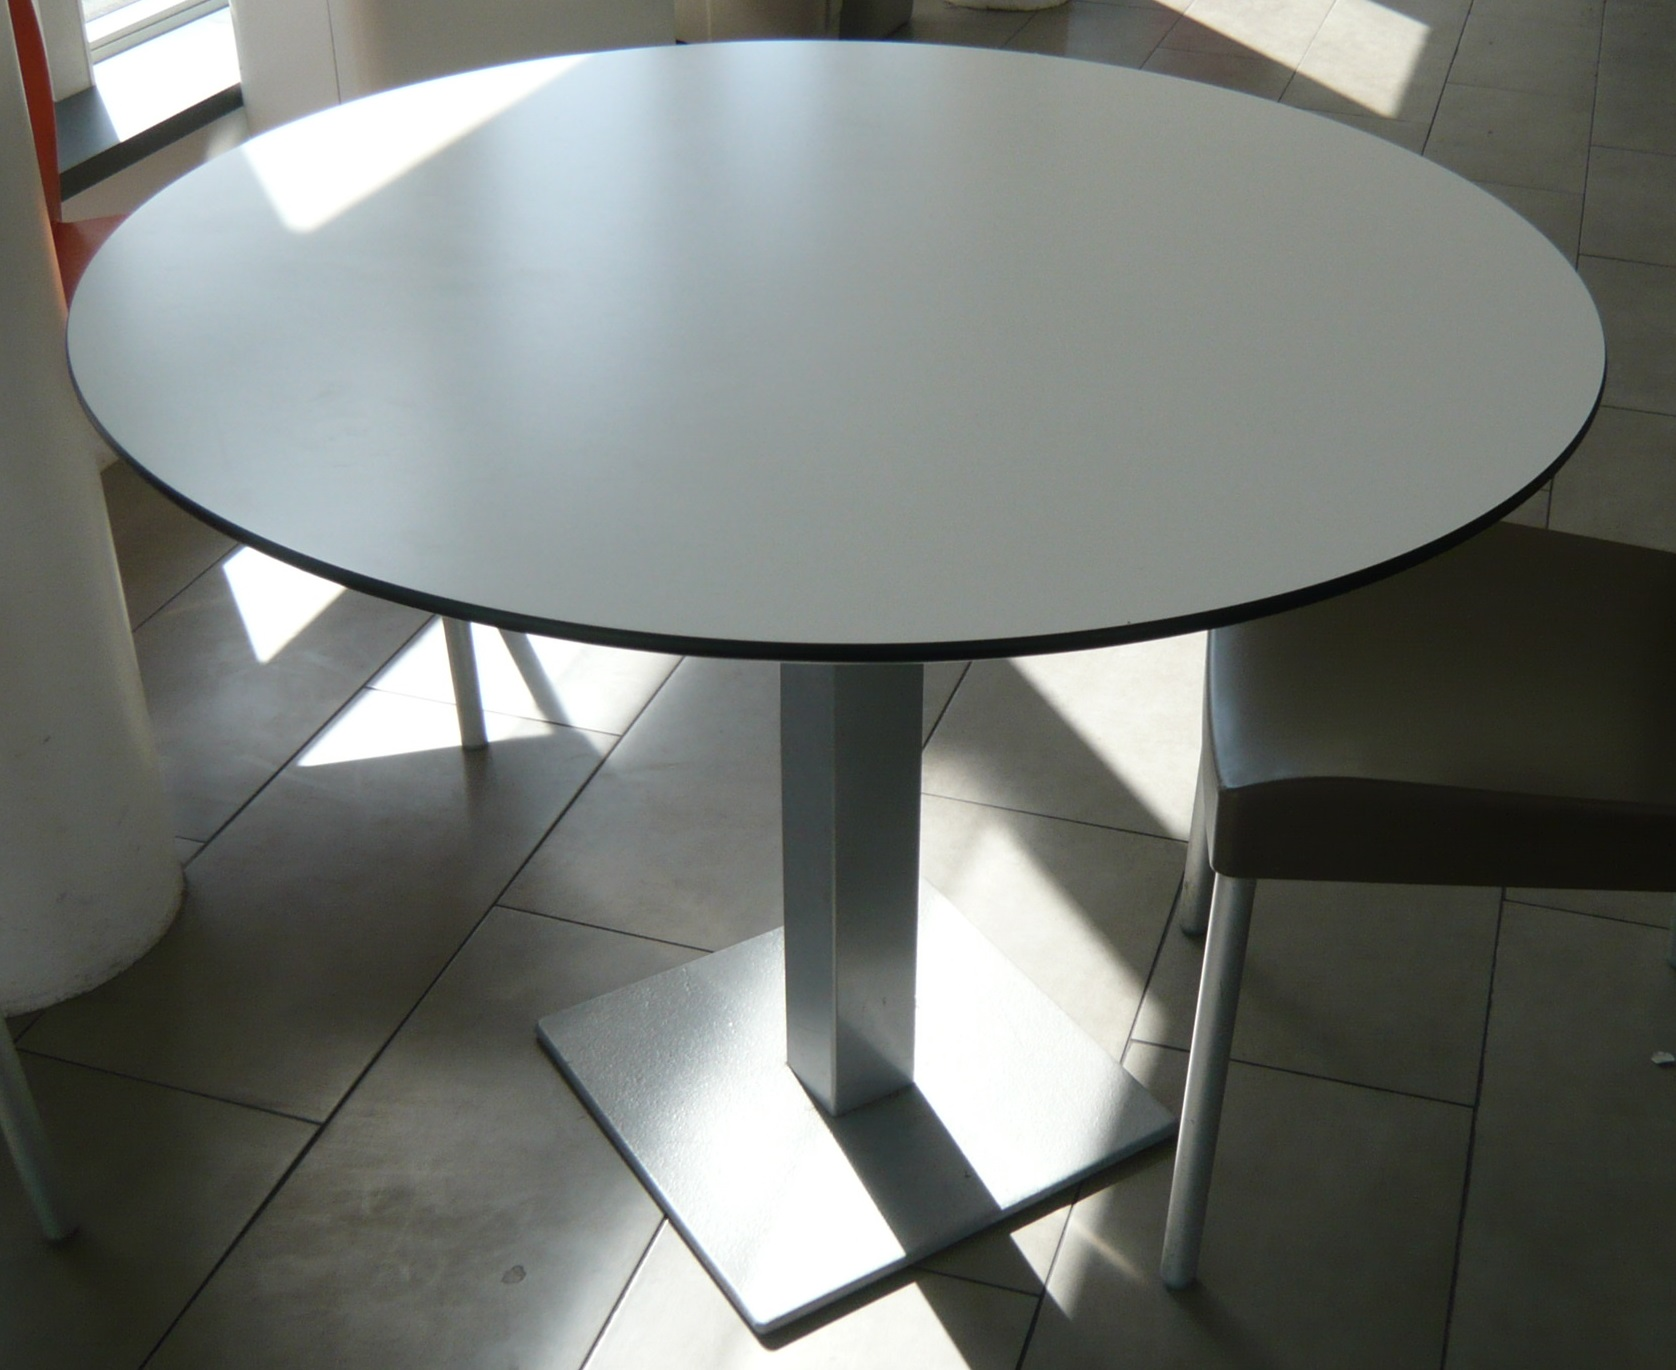 Table Ronde 100 Cm Table Ronde Diametre 100 Burocase